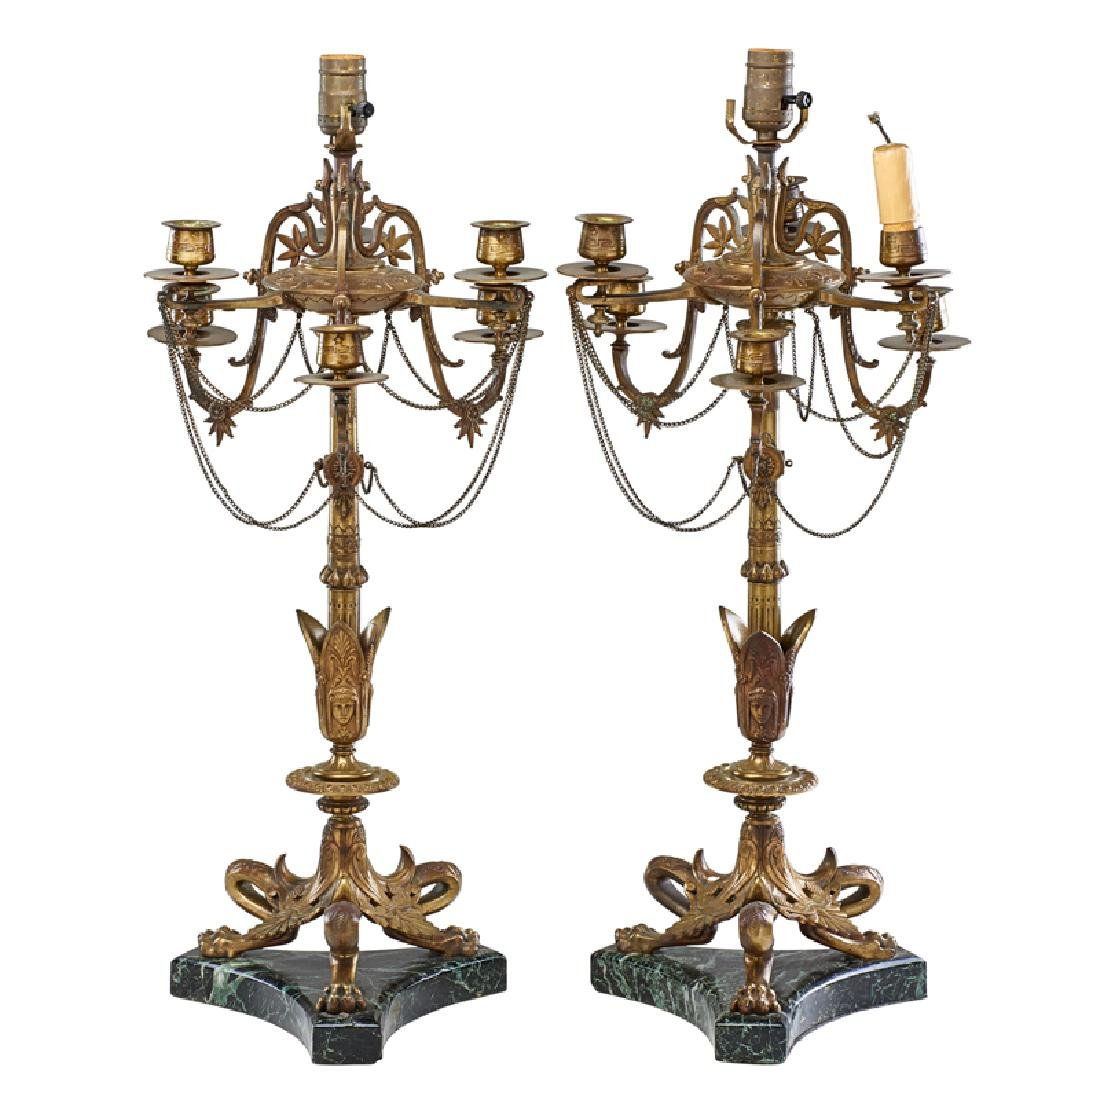 PAIR OF FRENCH EMPIRE STYLE CANDELABRA TABLE LAMPS